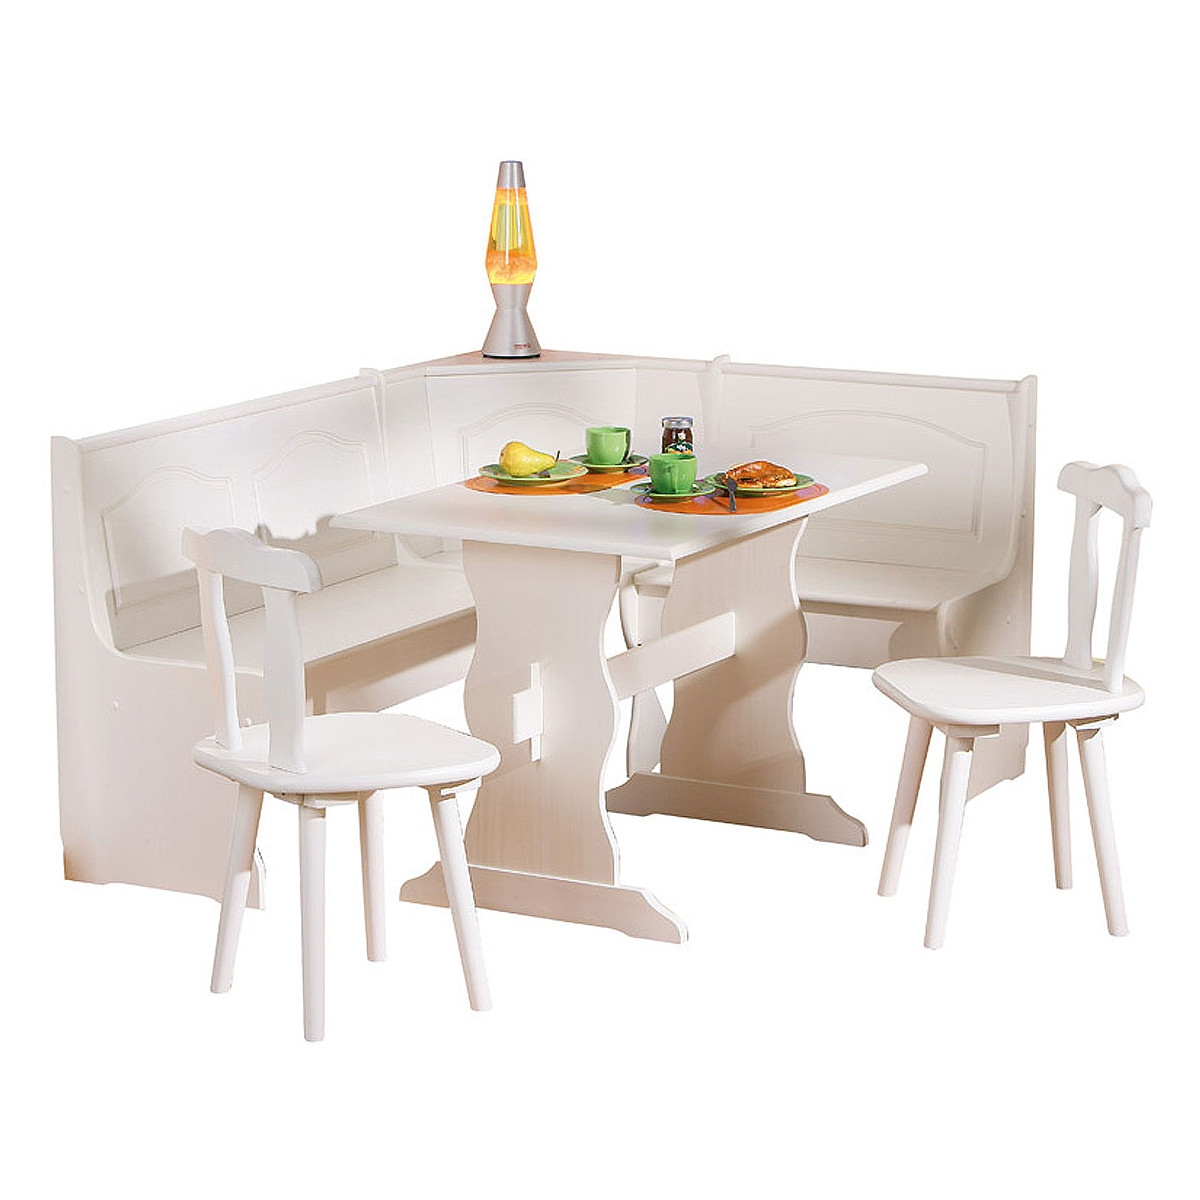 Coin repas blanc pin massif donau for Table cuisine en pin